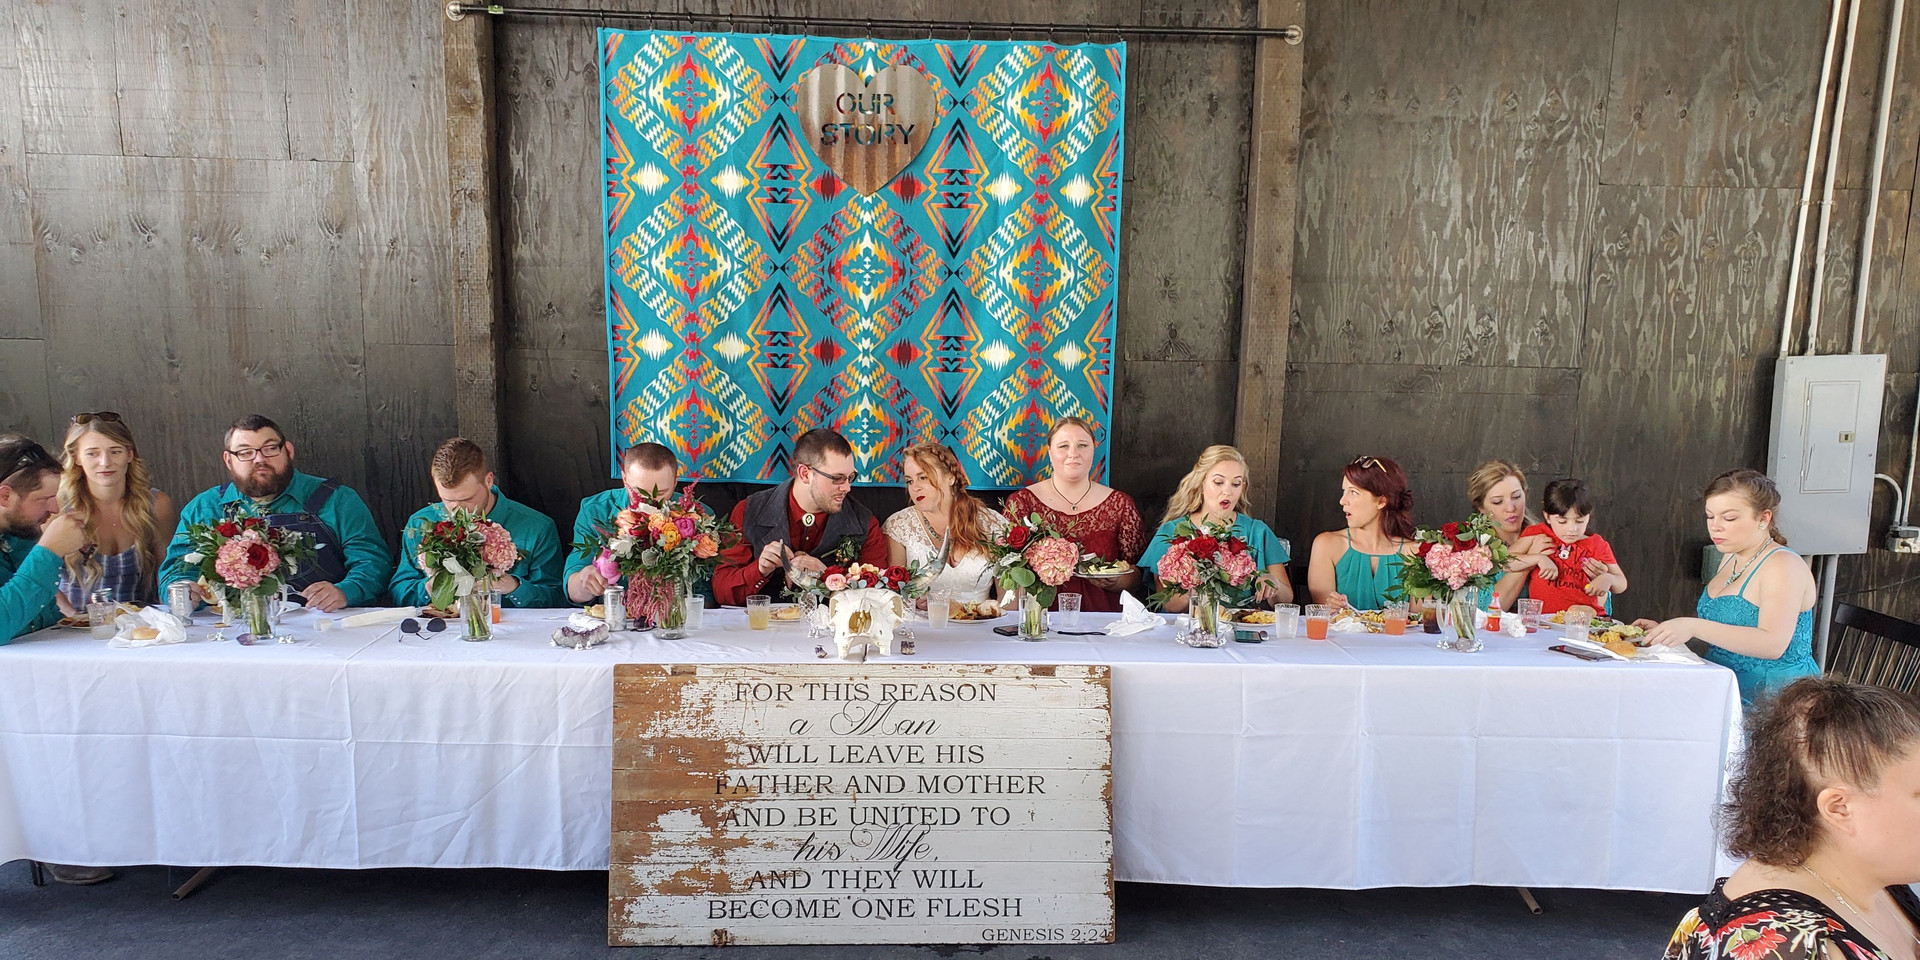 Bridal Table at the Party Patio